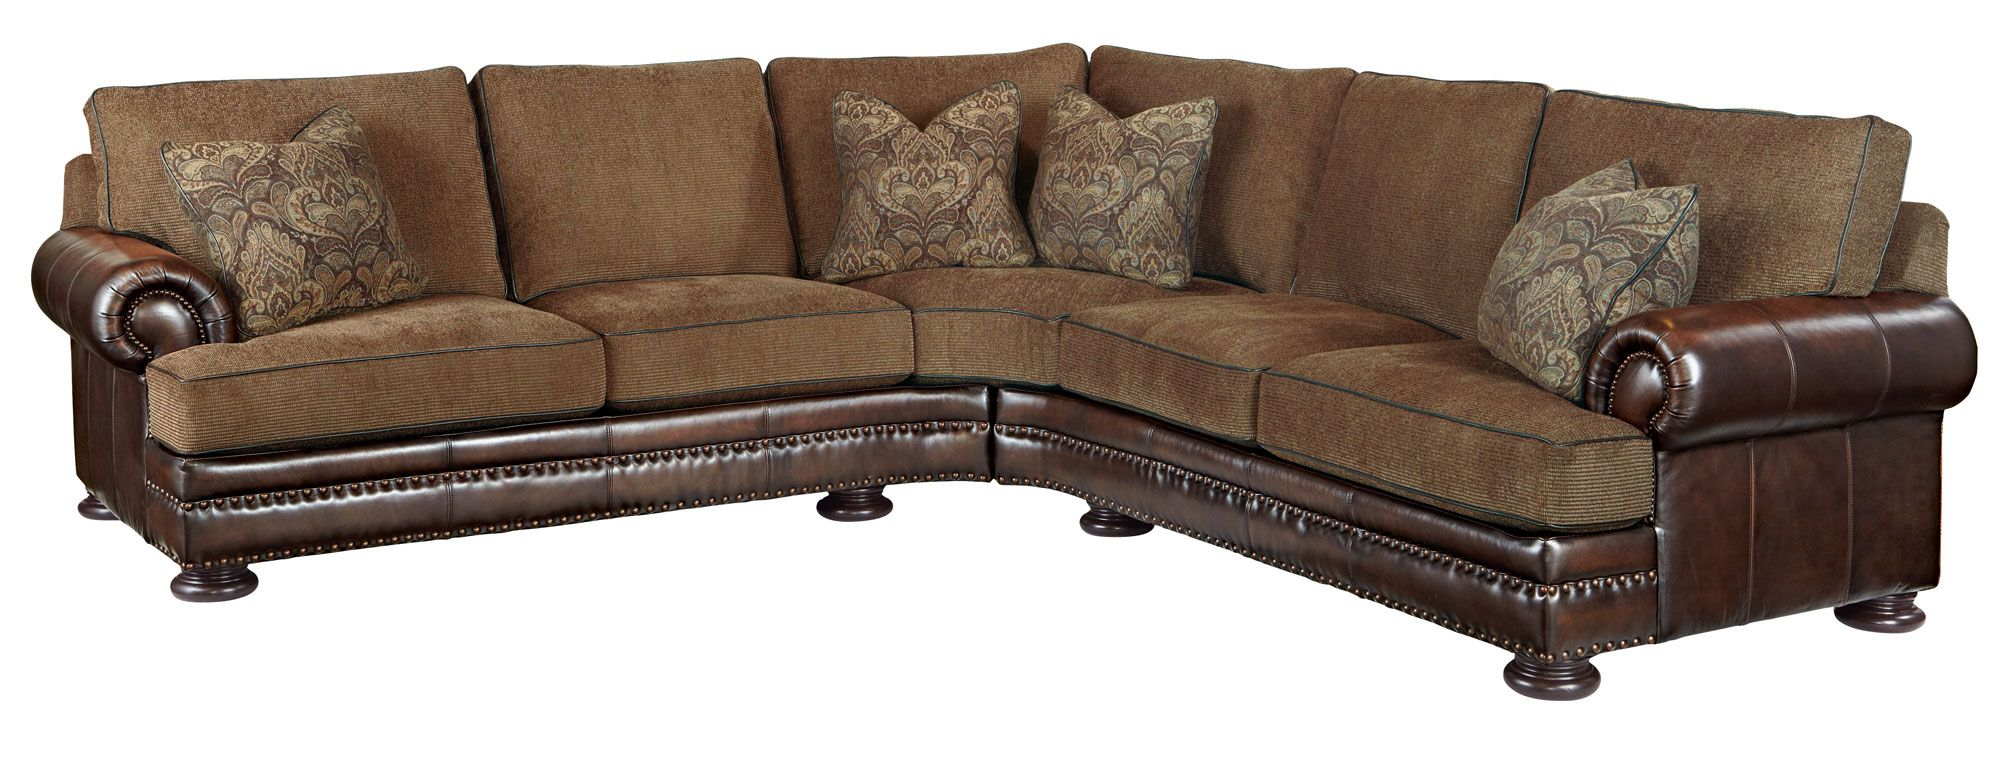 Traditional Leather Sectional Sofas Living Room Furniture China L Shaped Sofa Design Ideas For